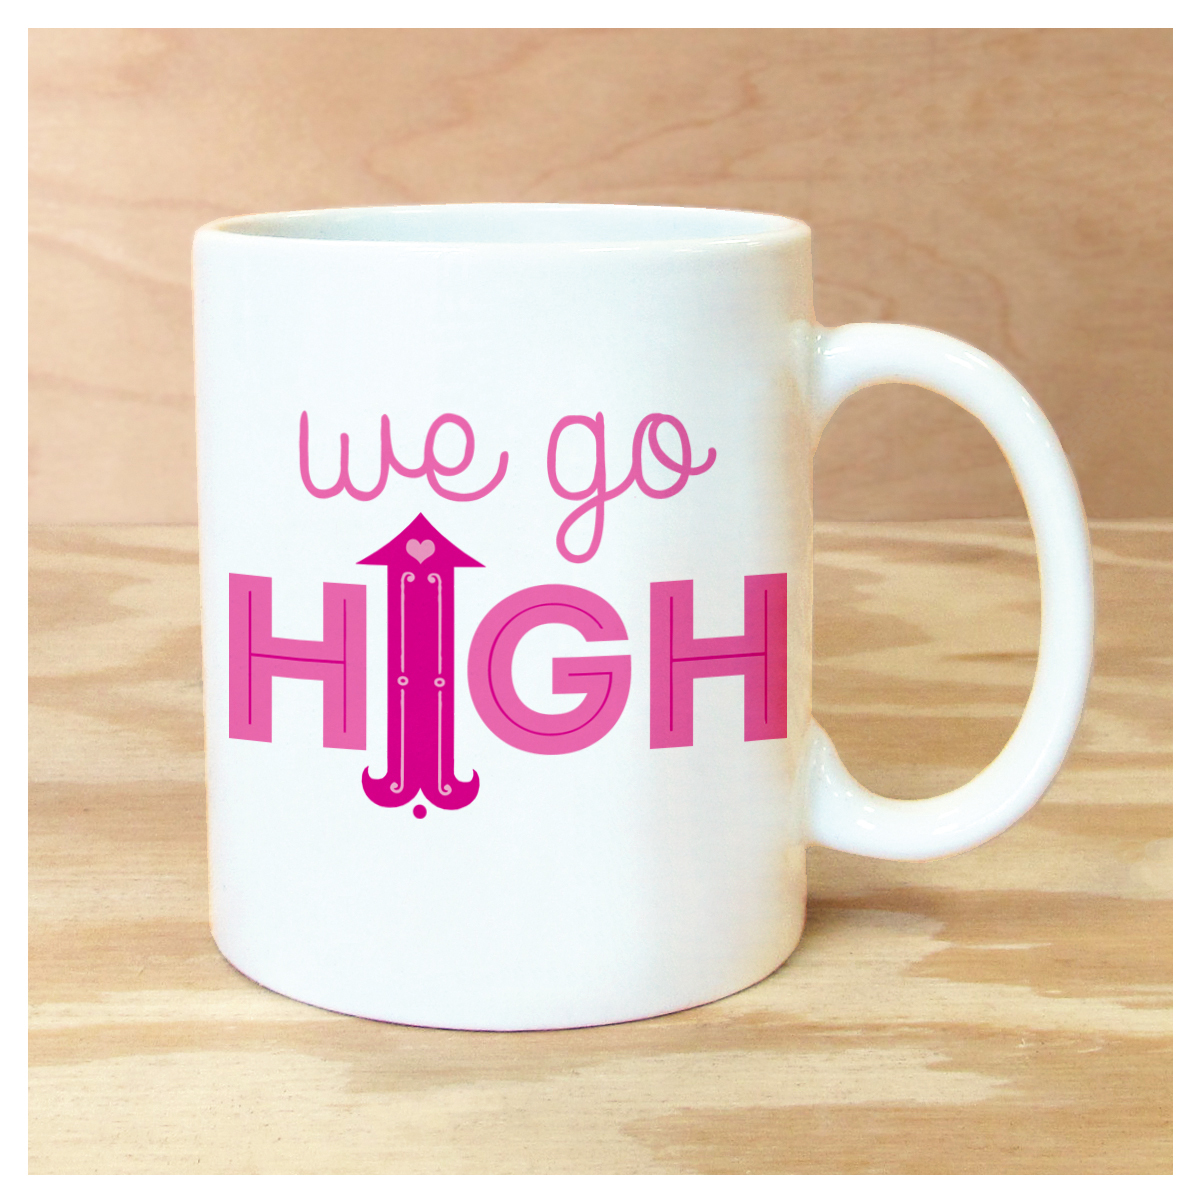 ON SALE! WAS $15.99, NOW $12.99 WE GO HIGH MUG